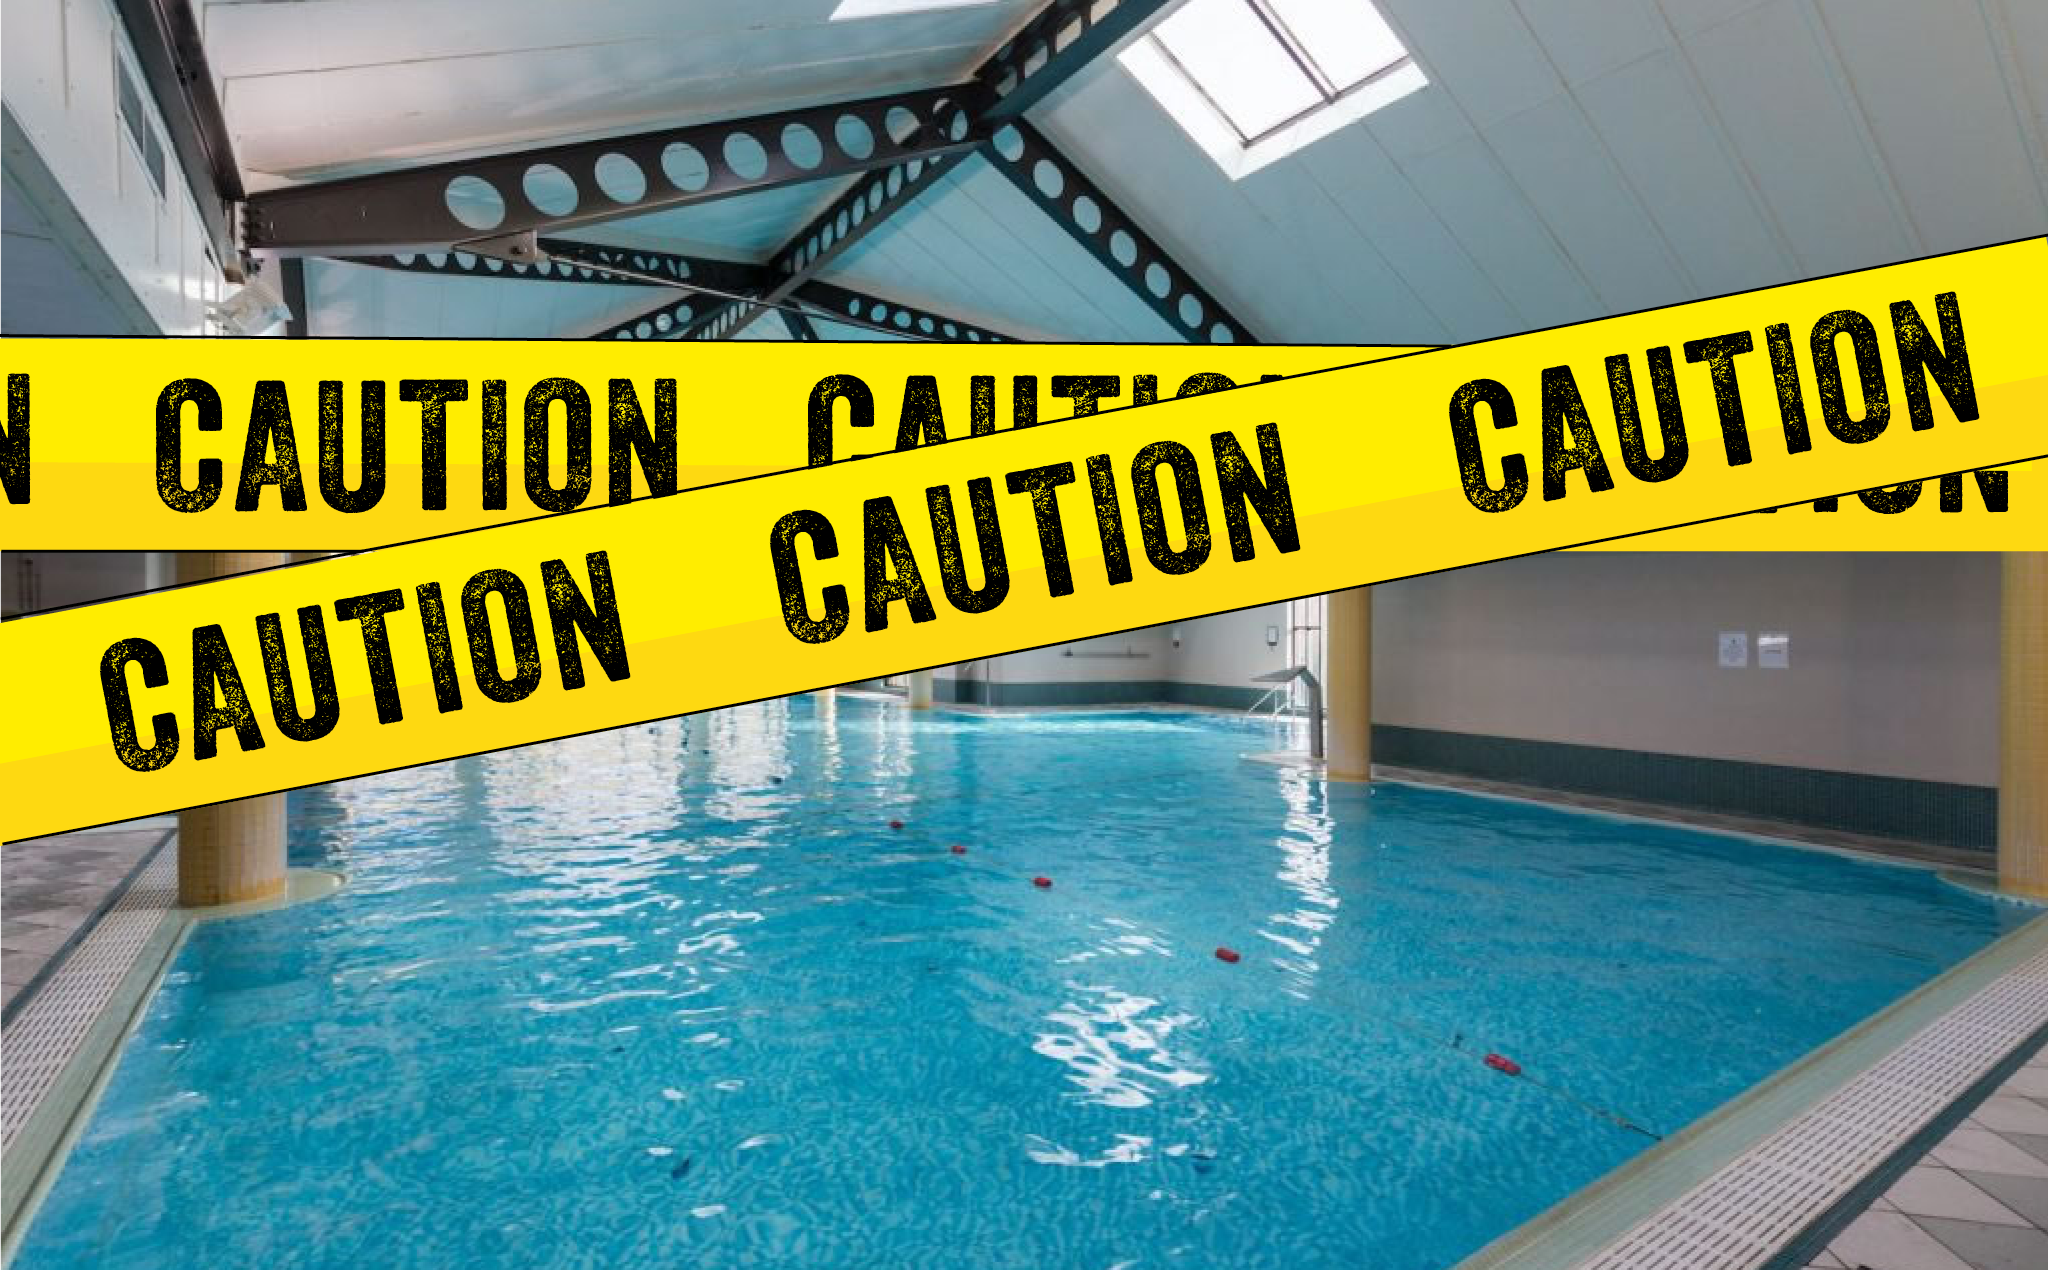 Caution swimming pool clear water revival - Dangers of chlorine in swimming pools ...